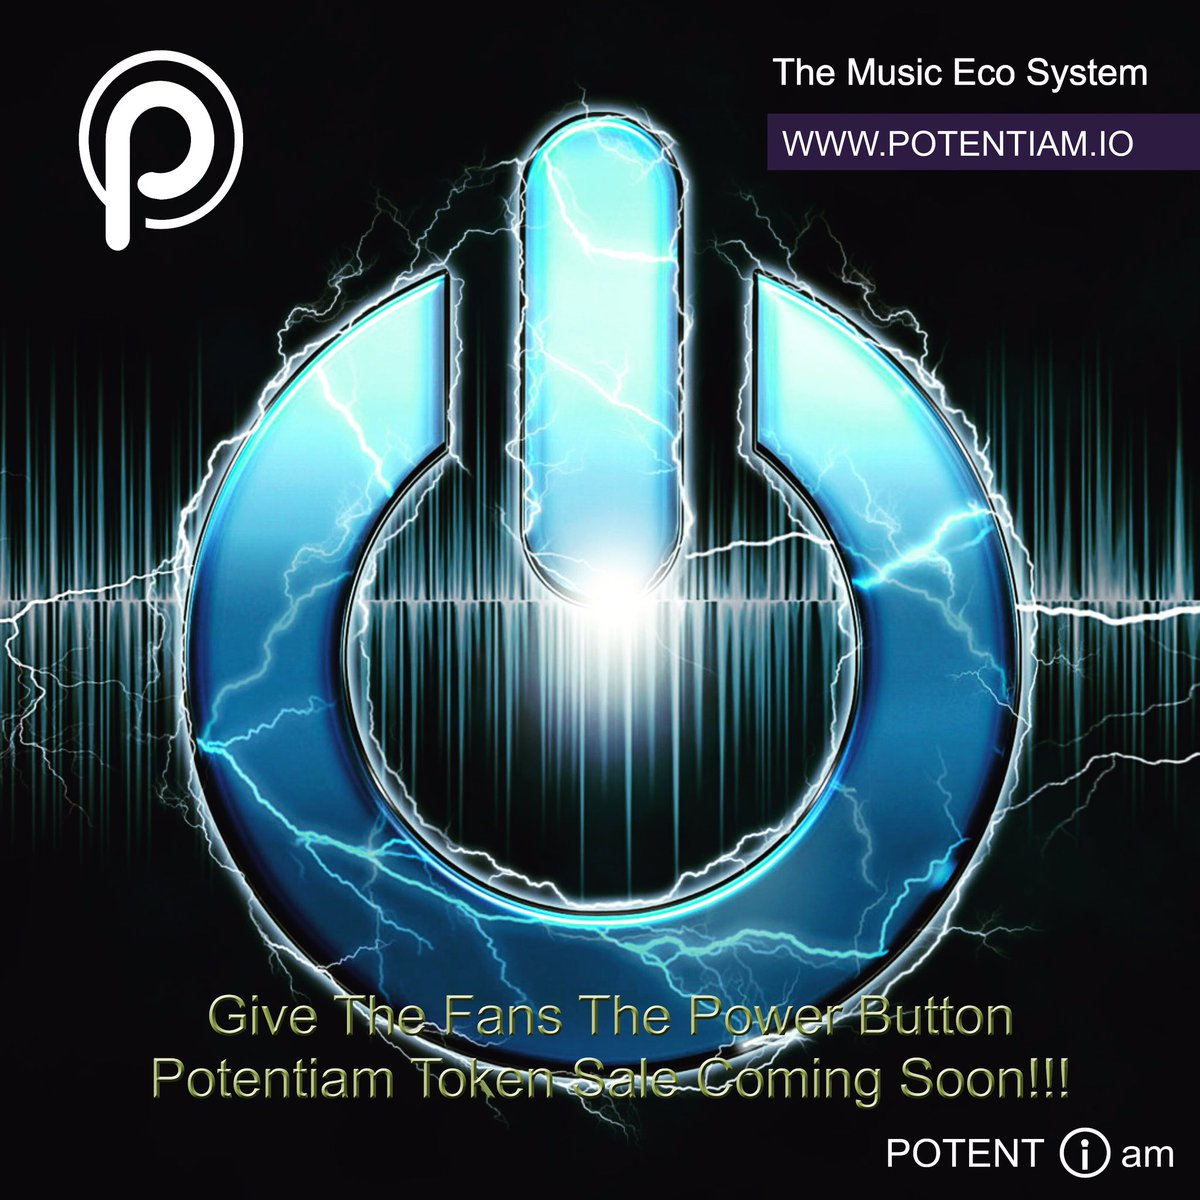 Potentiam on twitter music supporters have value pre ico coming potentiam on twitter music supporters have value pre ico cominghttpst2416hixfer musiclovers blockchain tokensale digitaleconomy biocorpaavc